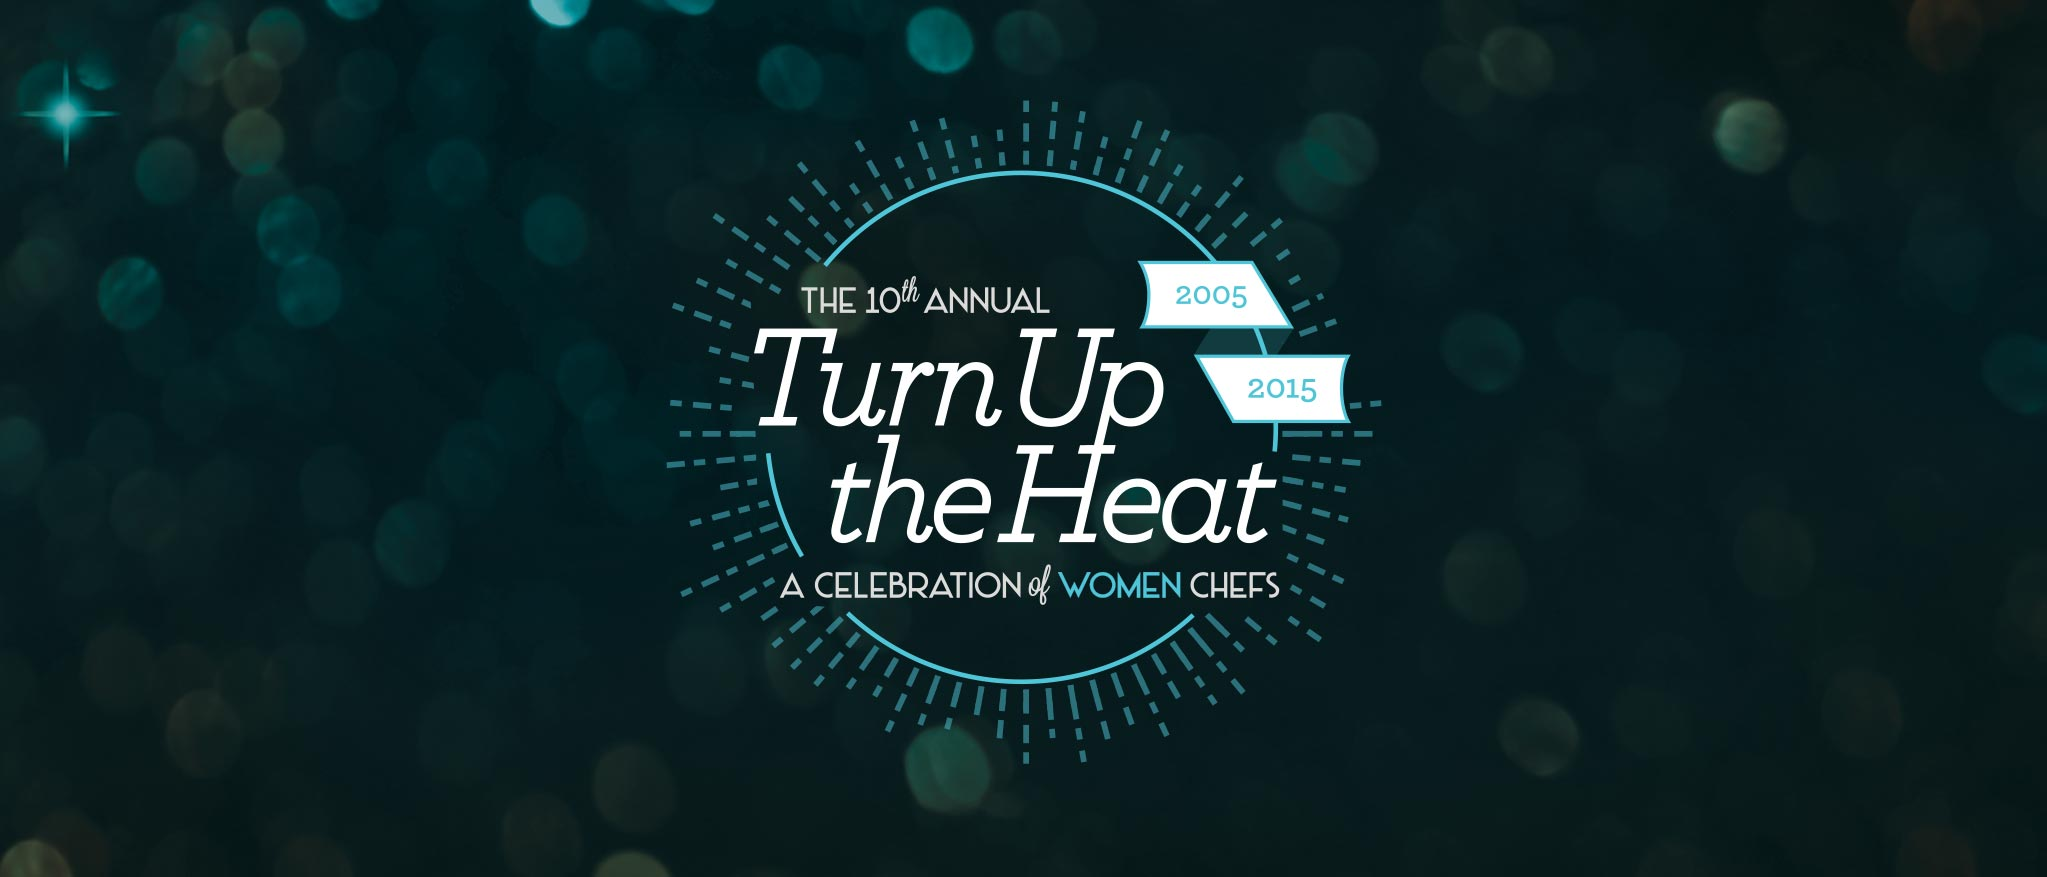 The Turn Up the Heat logo